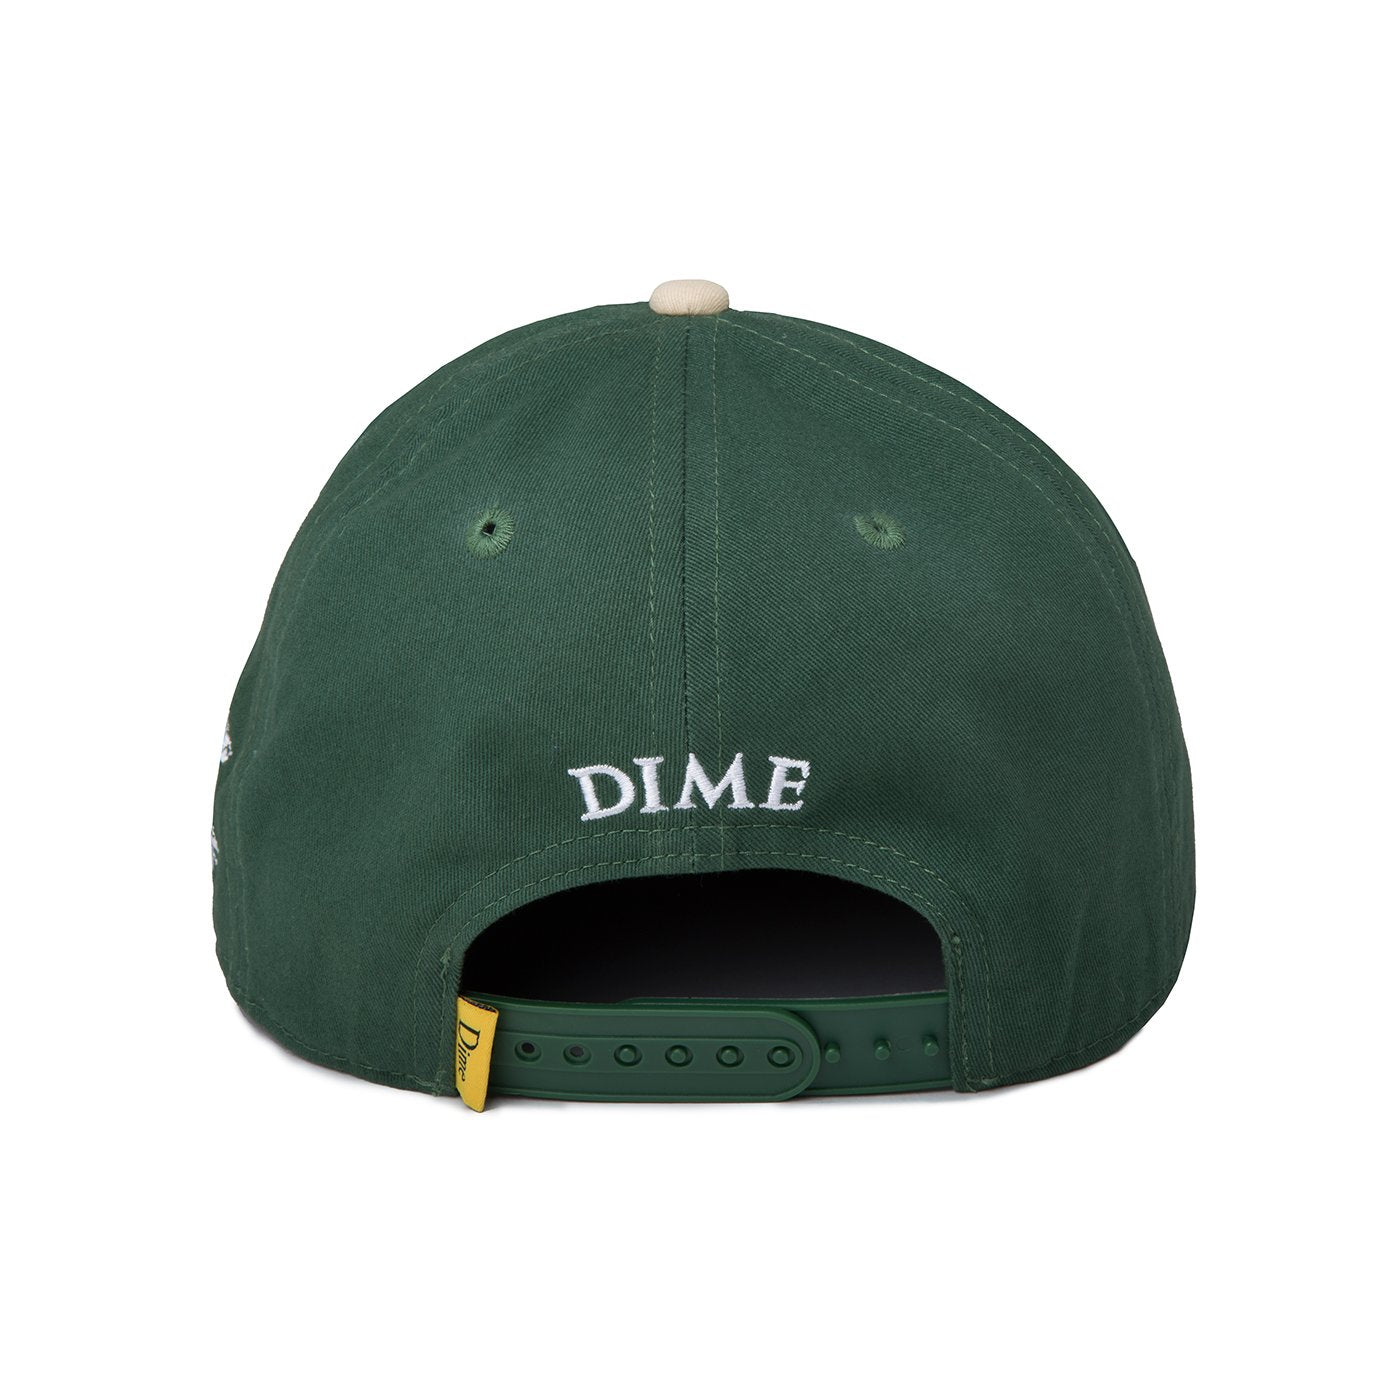 Dime Montreal Champion Cap Product Photo #3